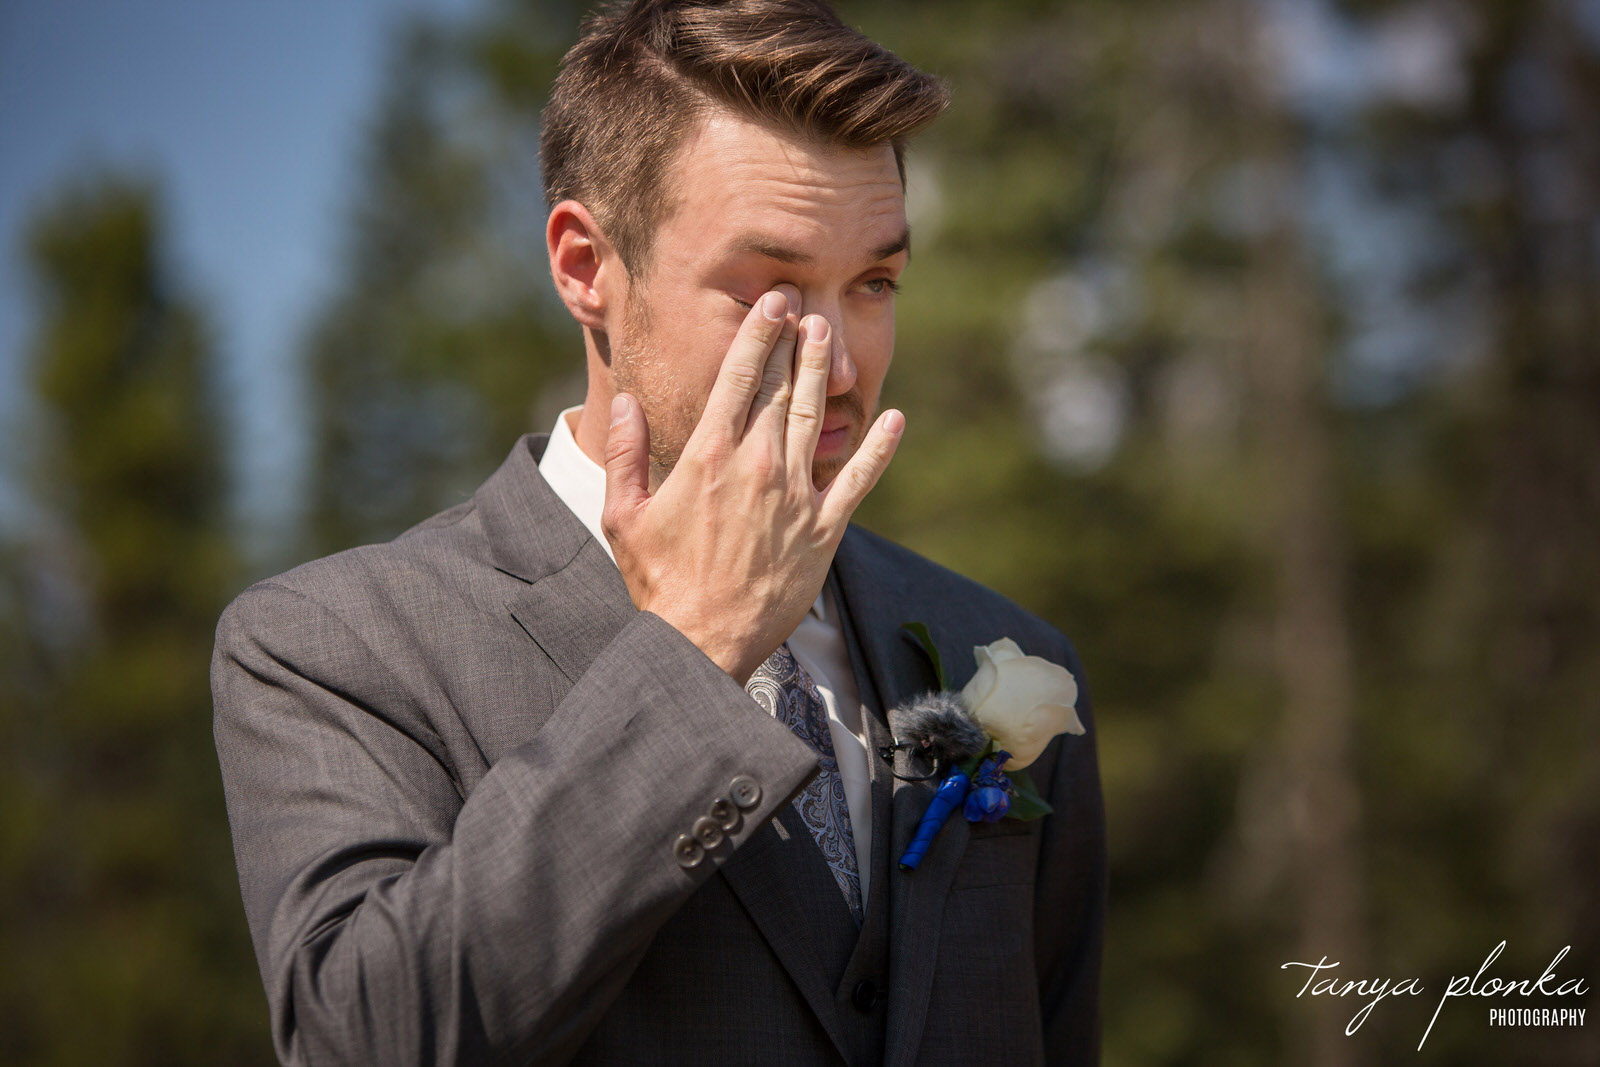 emotional groom wipes away tear at wedding ceremony in Banff